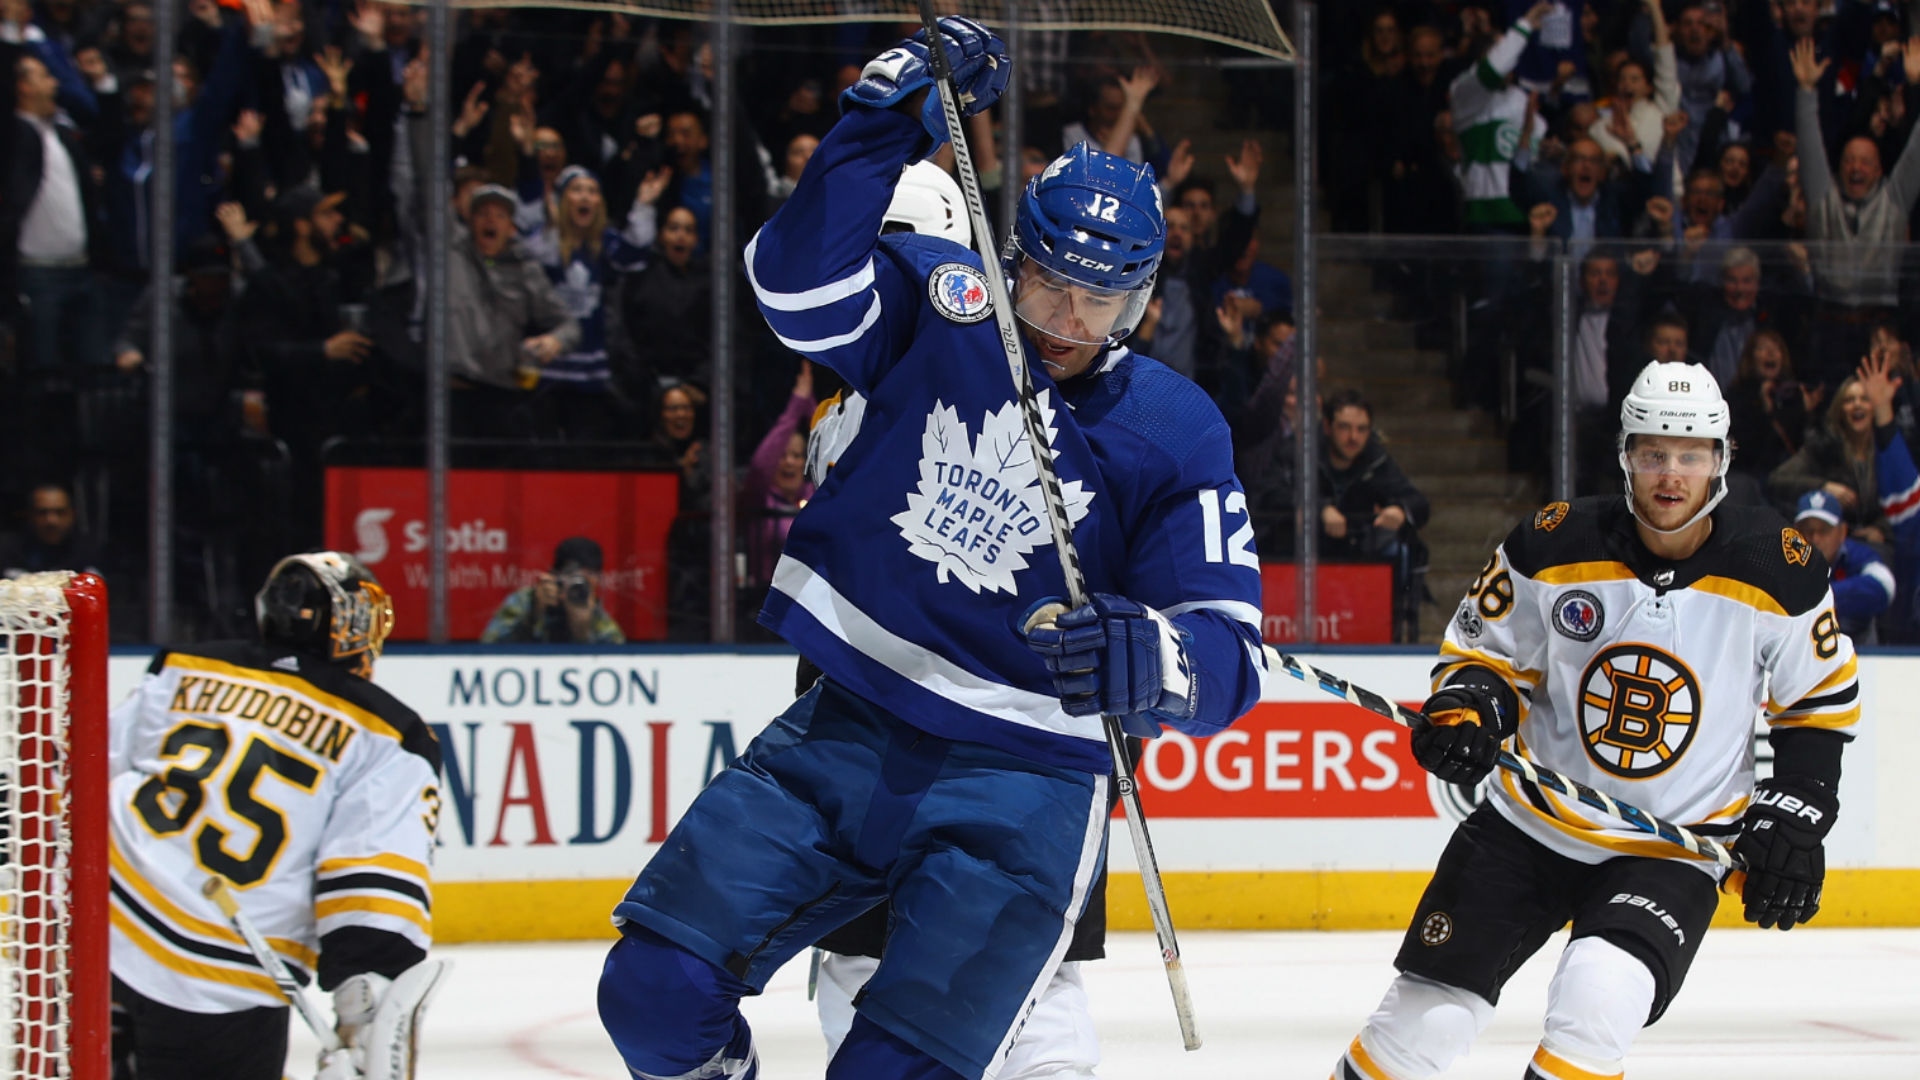 Maple Leafs forward Leo Komarov out for Game 3 against Bruins